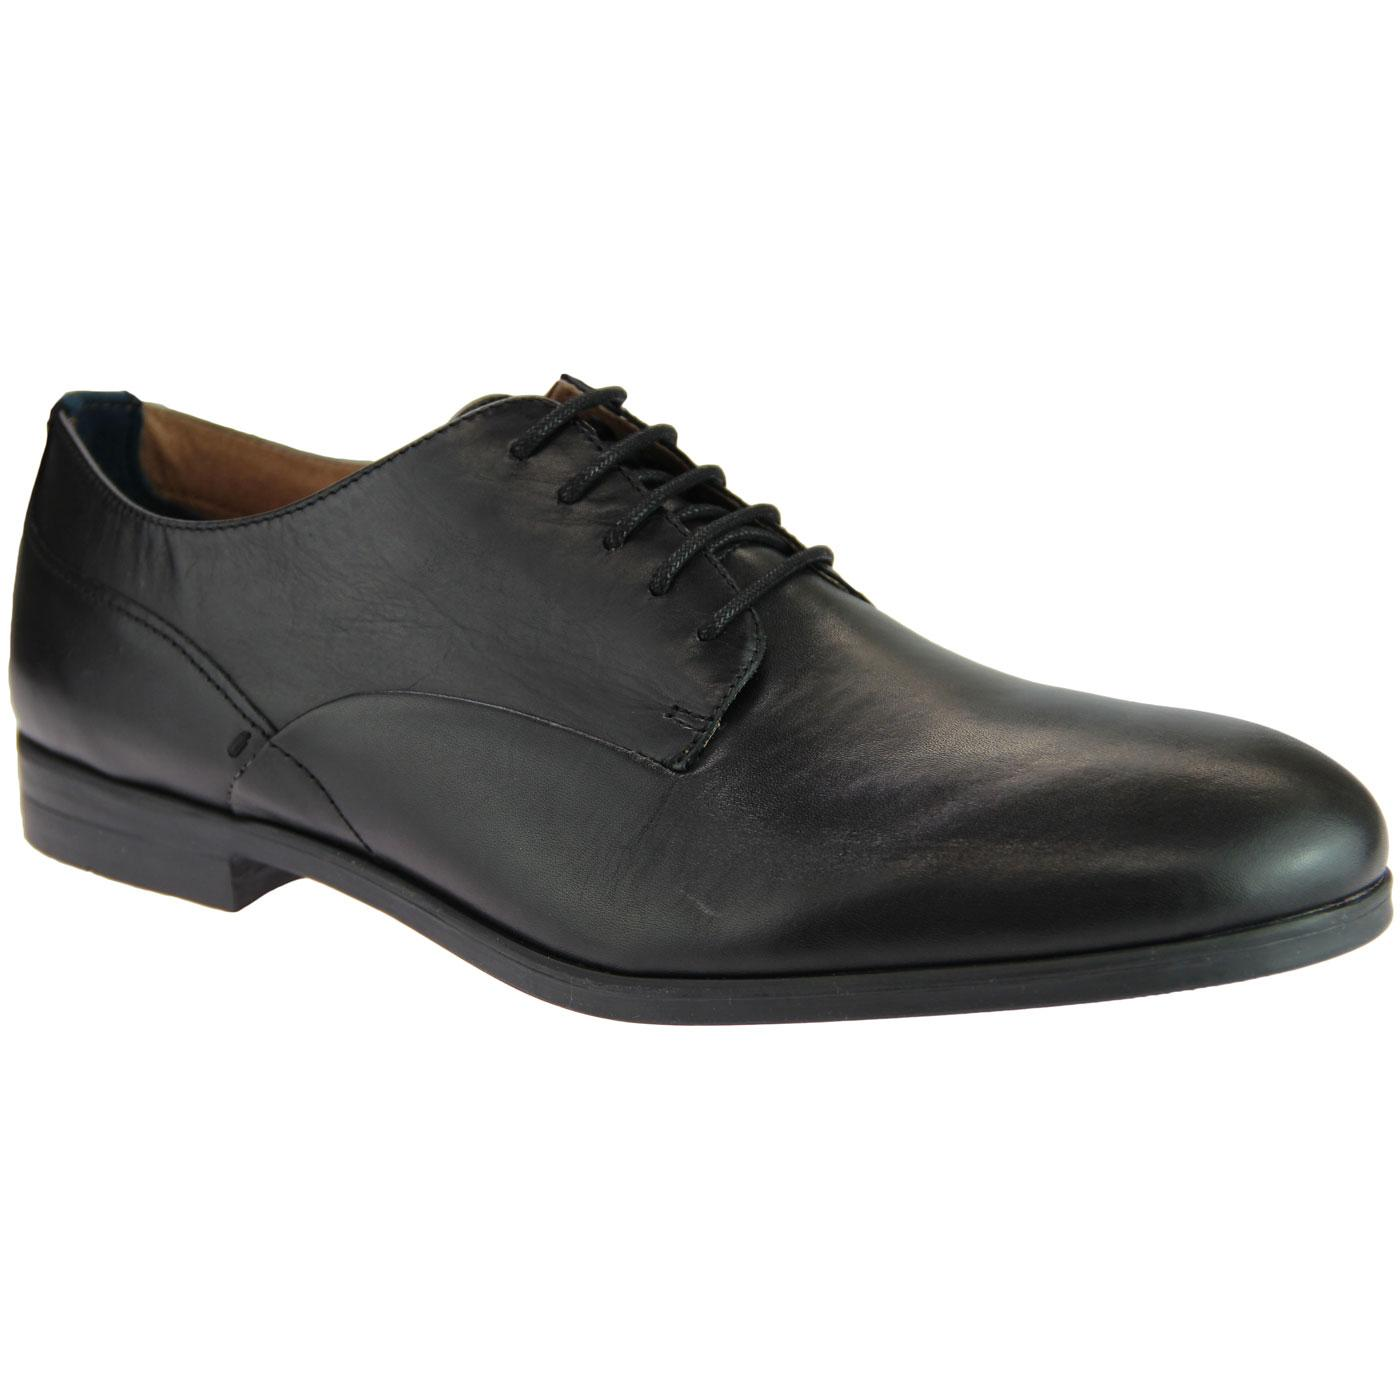 Axminster HUDSON 60s Mod Leather Derby Shoes BLACK